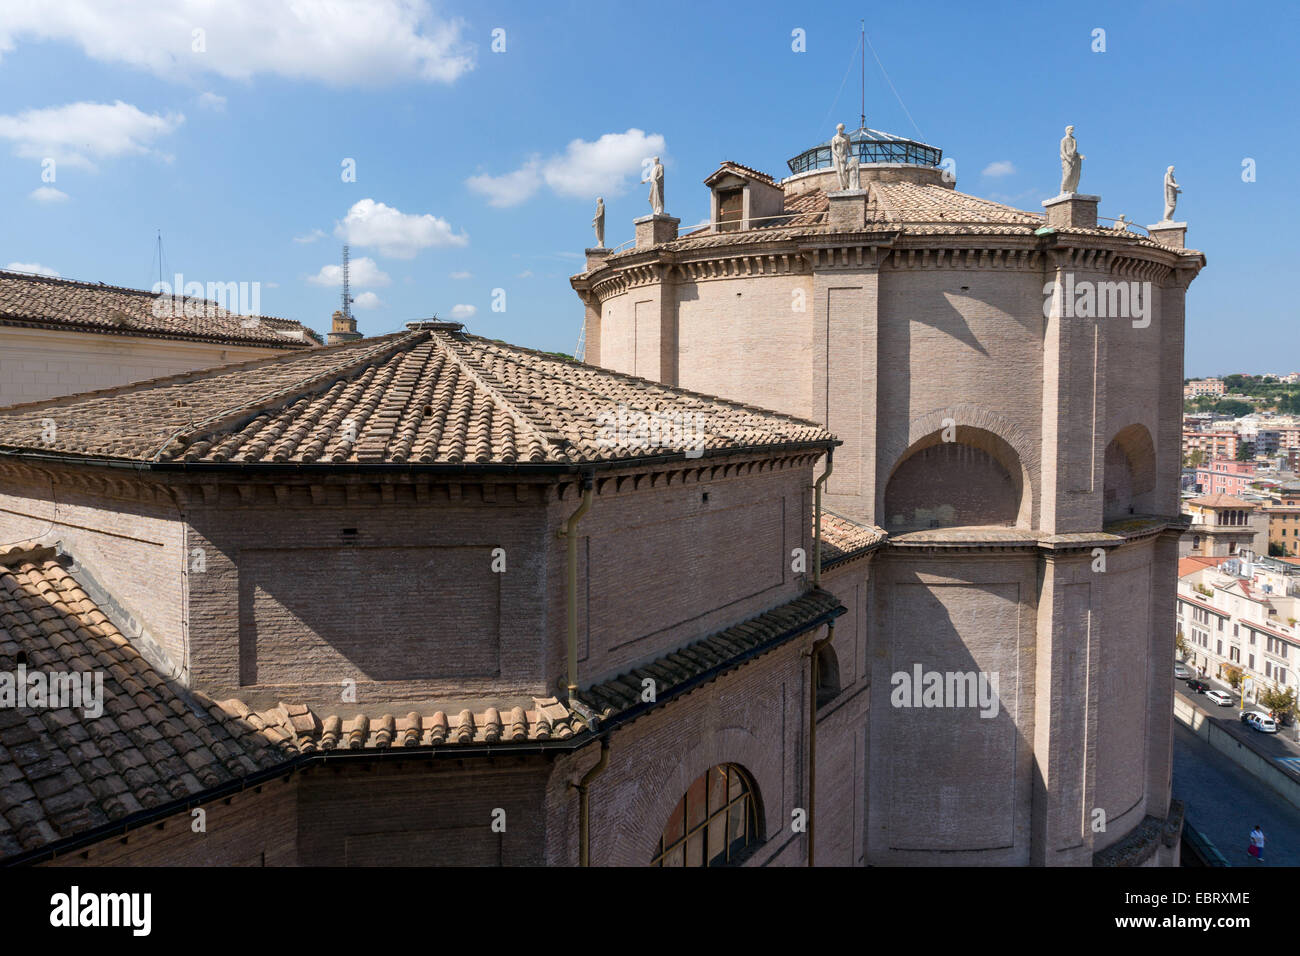 Vatican City: Outside view of the Vatican Museums. Photo from 4th September 2014. Stock Photo